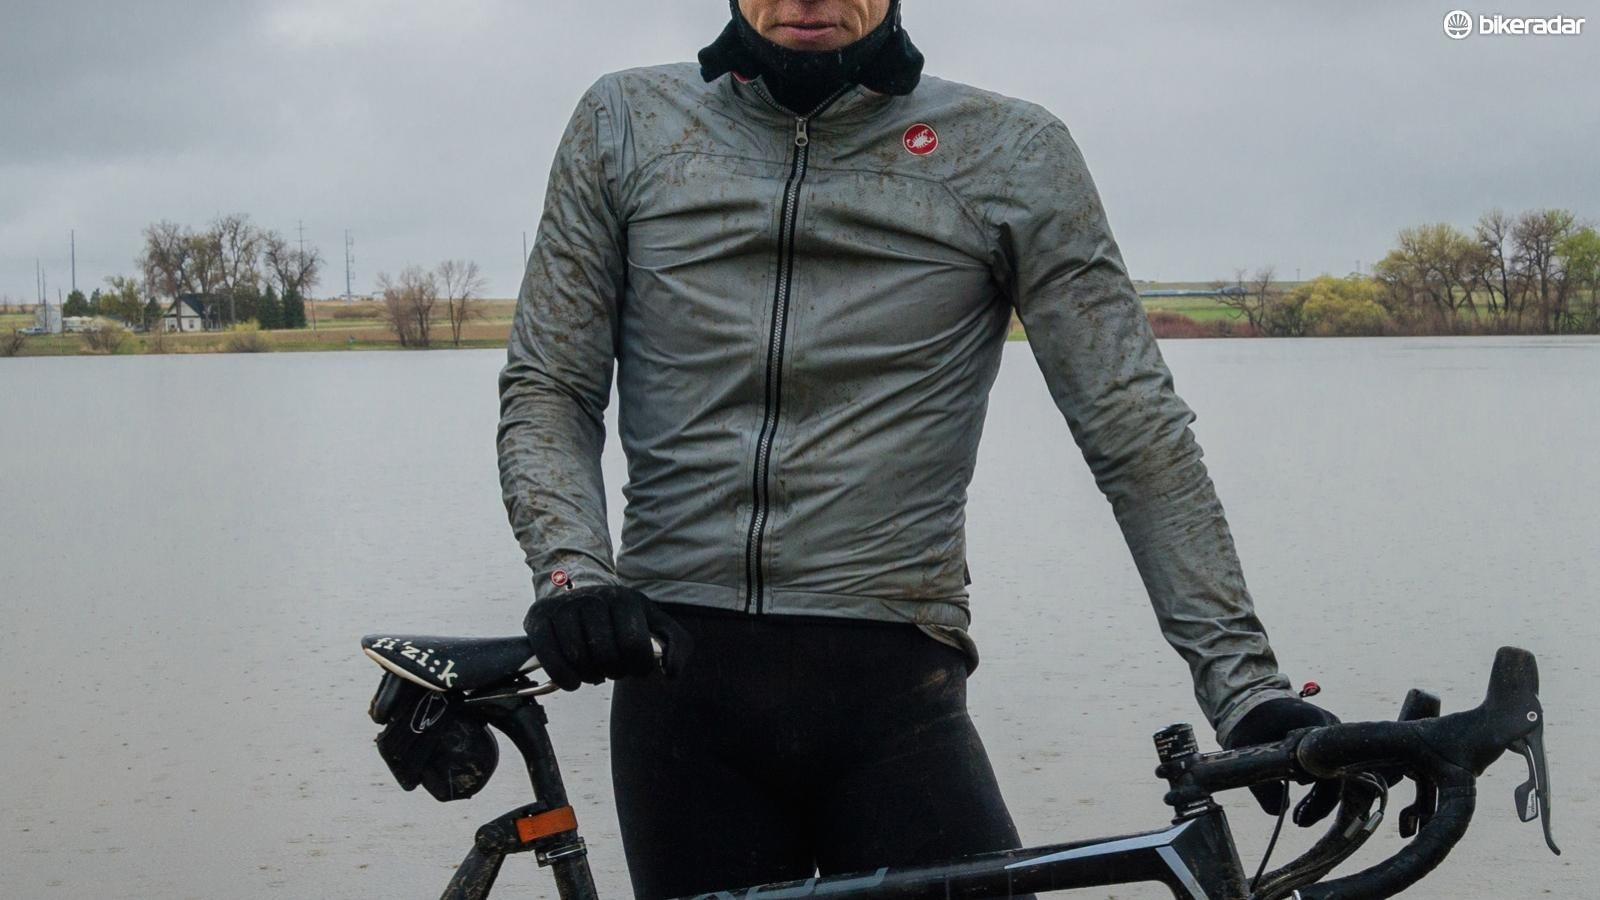 A decent waterproof jacket is the first place to start, whether you're a roadie, mountain biker or commuter